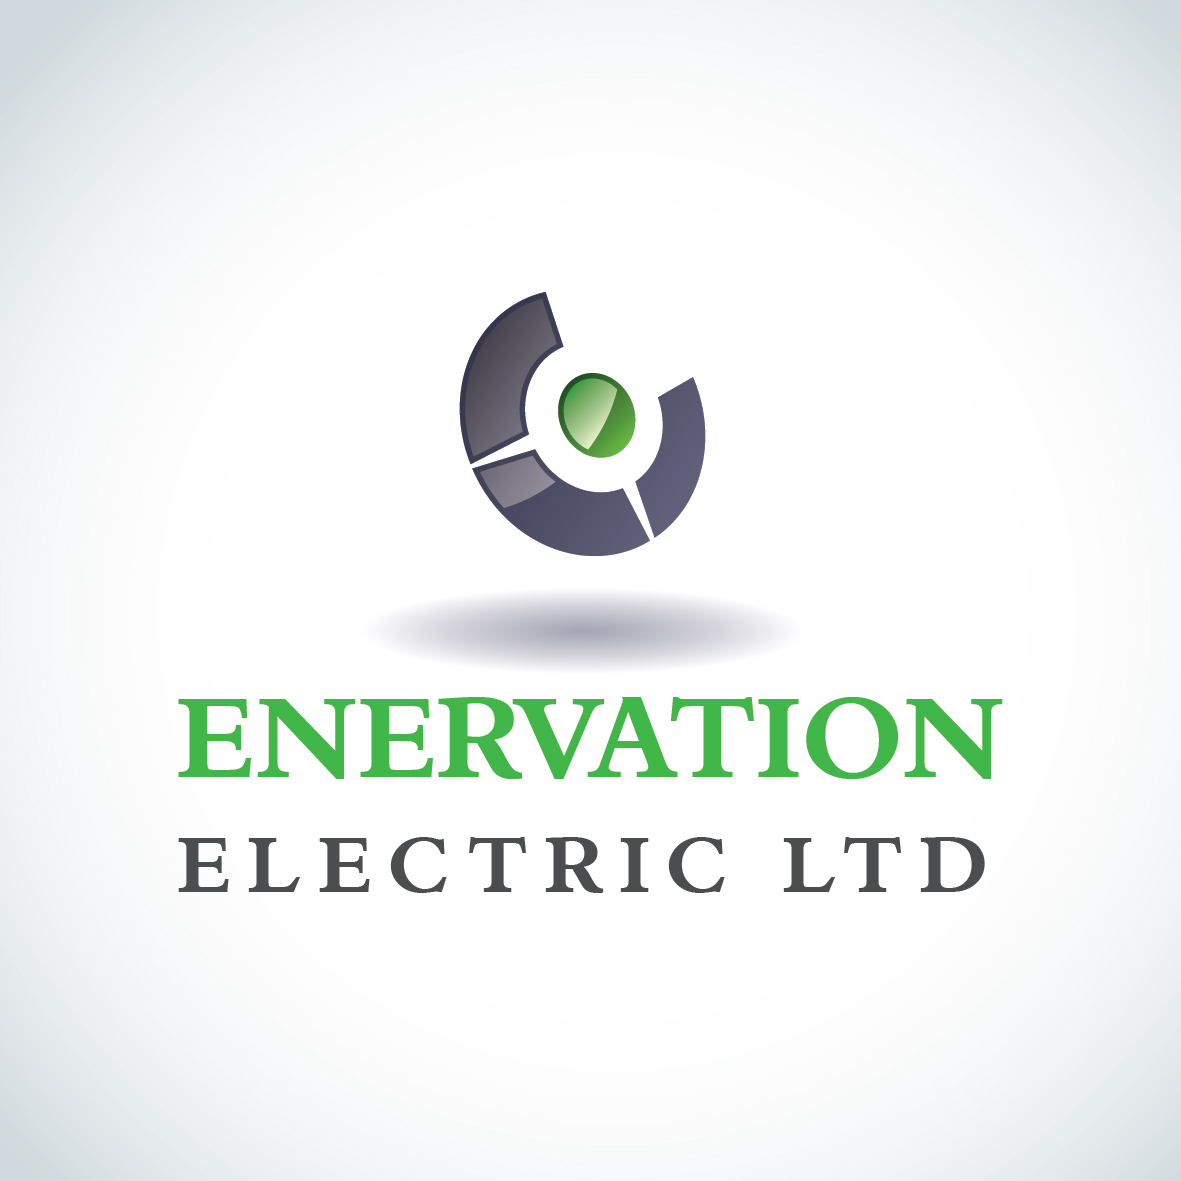 Business Card Design by aesthetic-art - Entry No. 138 in the Business Card Design Contest Enervation Logo Design.